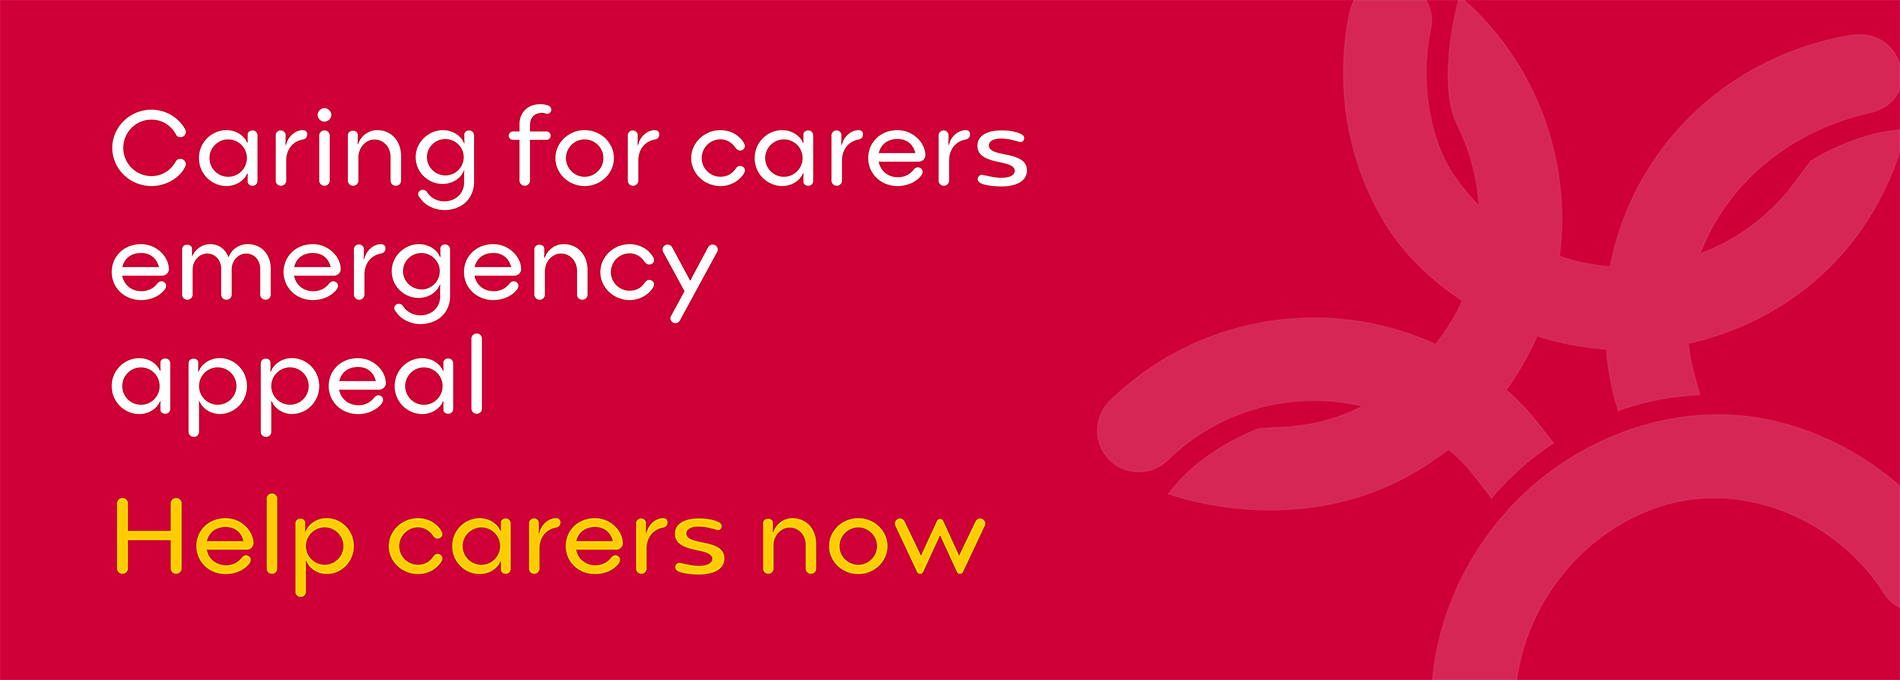 Caring for carers emergency appeal - help carers now